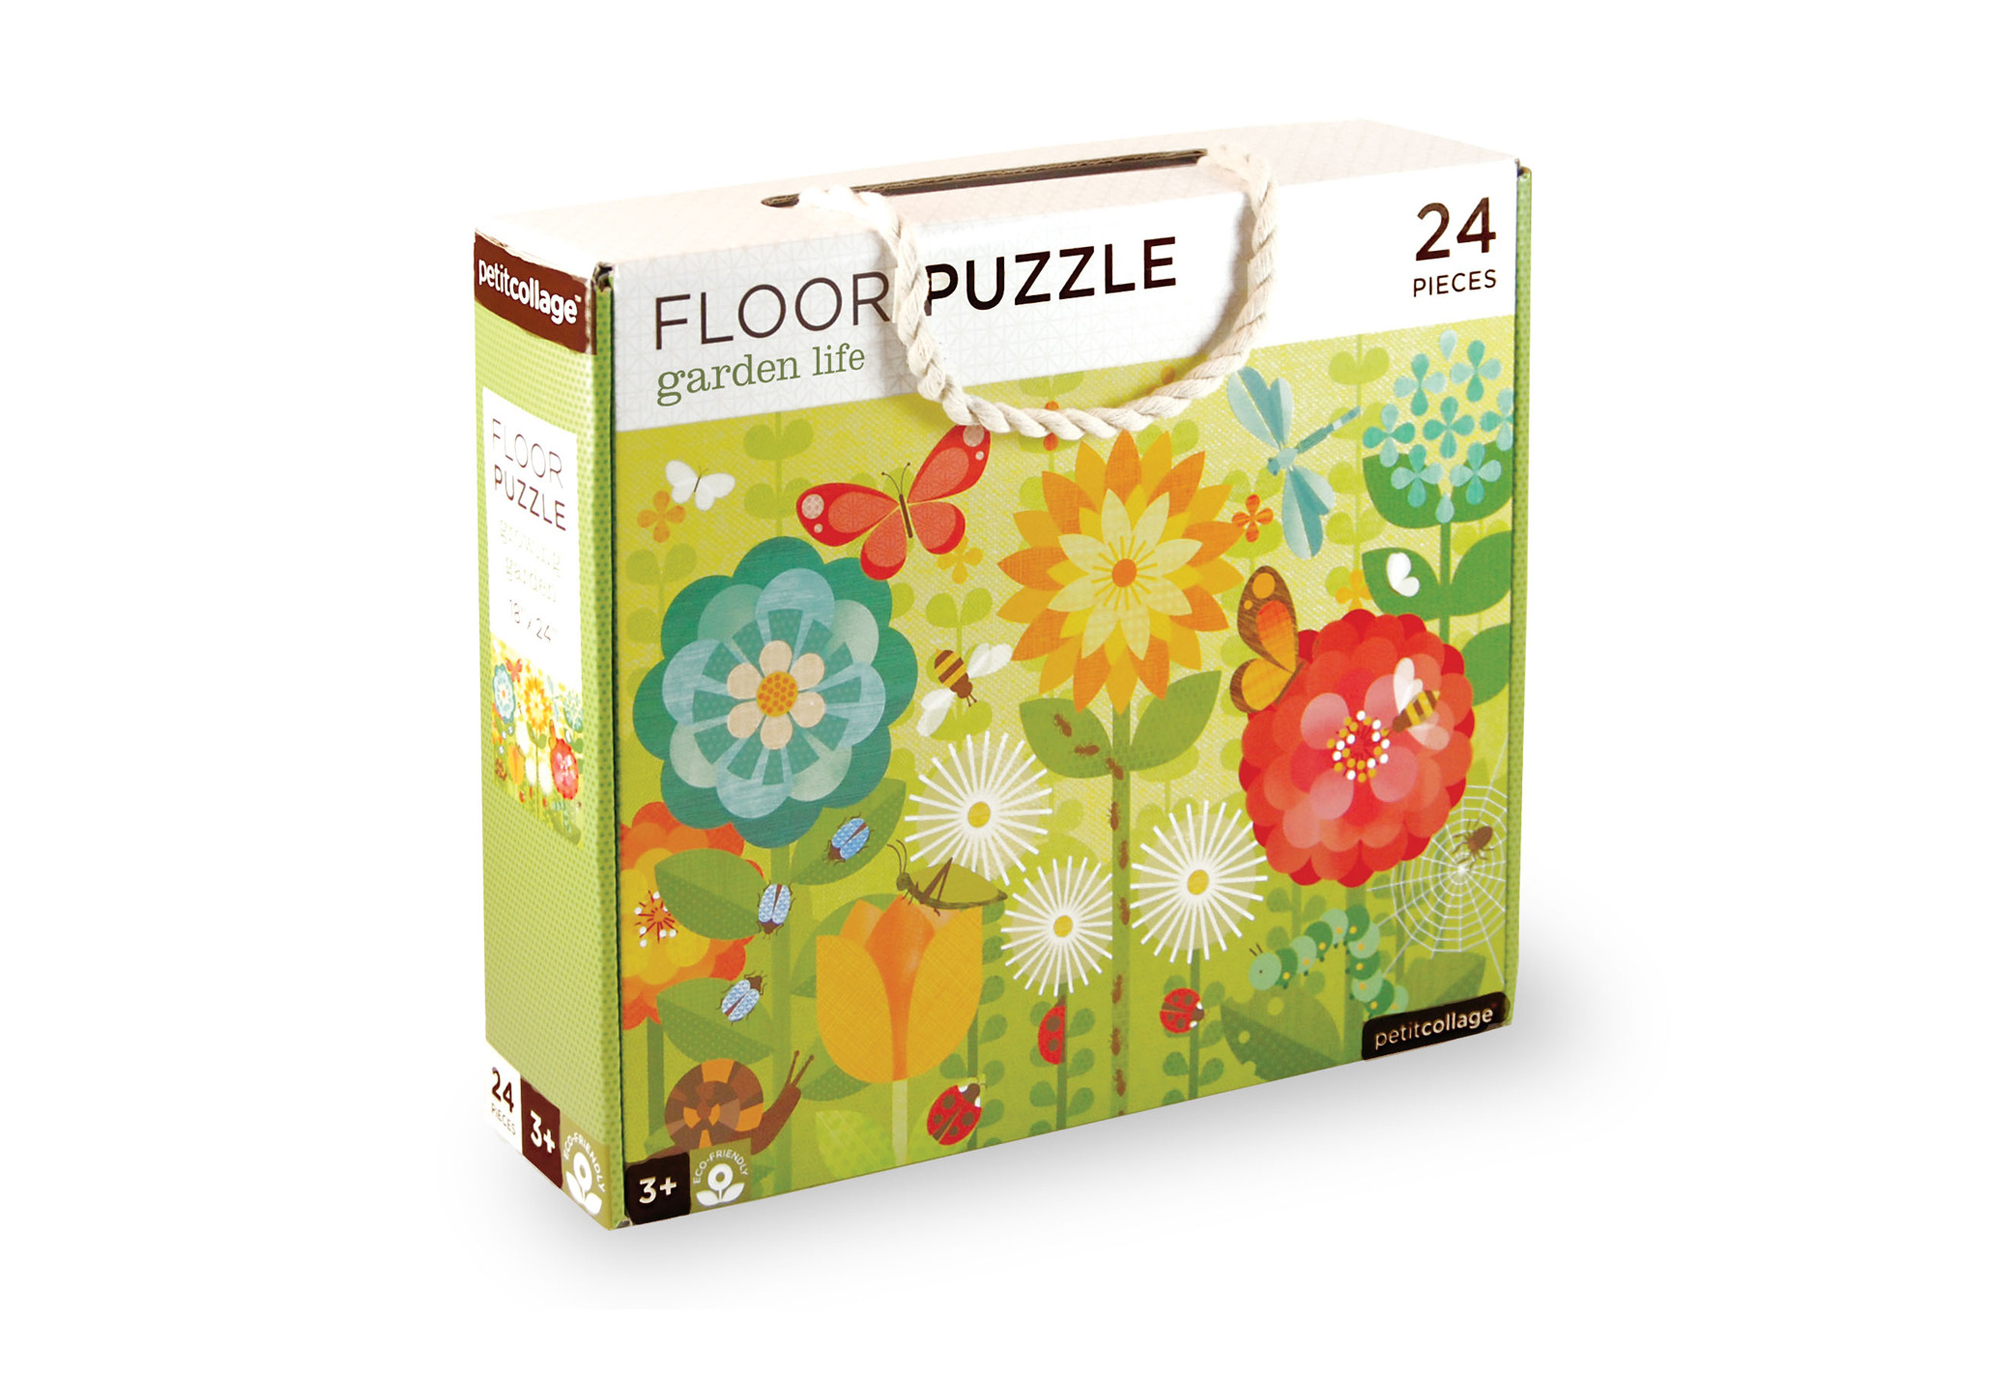 Floor Puzzle Growing Garden